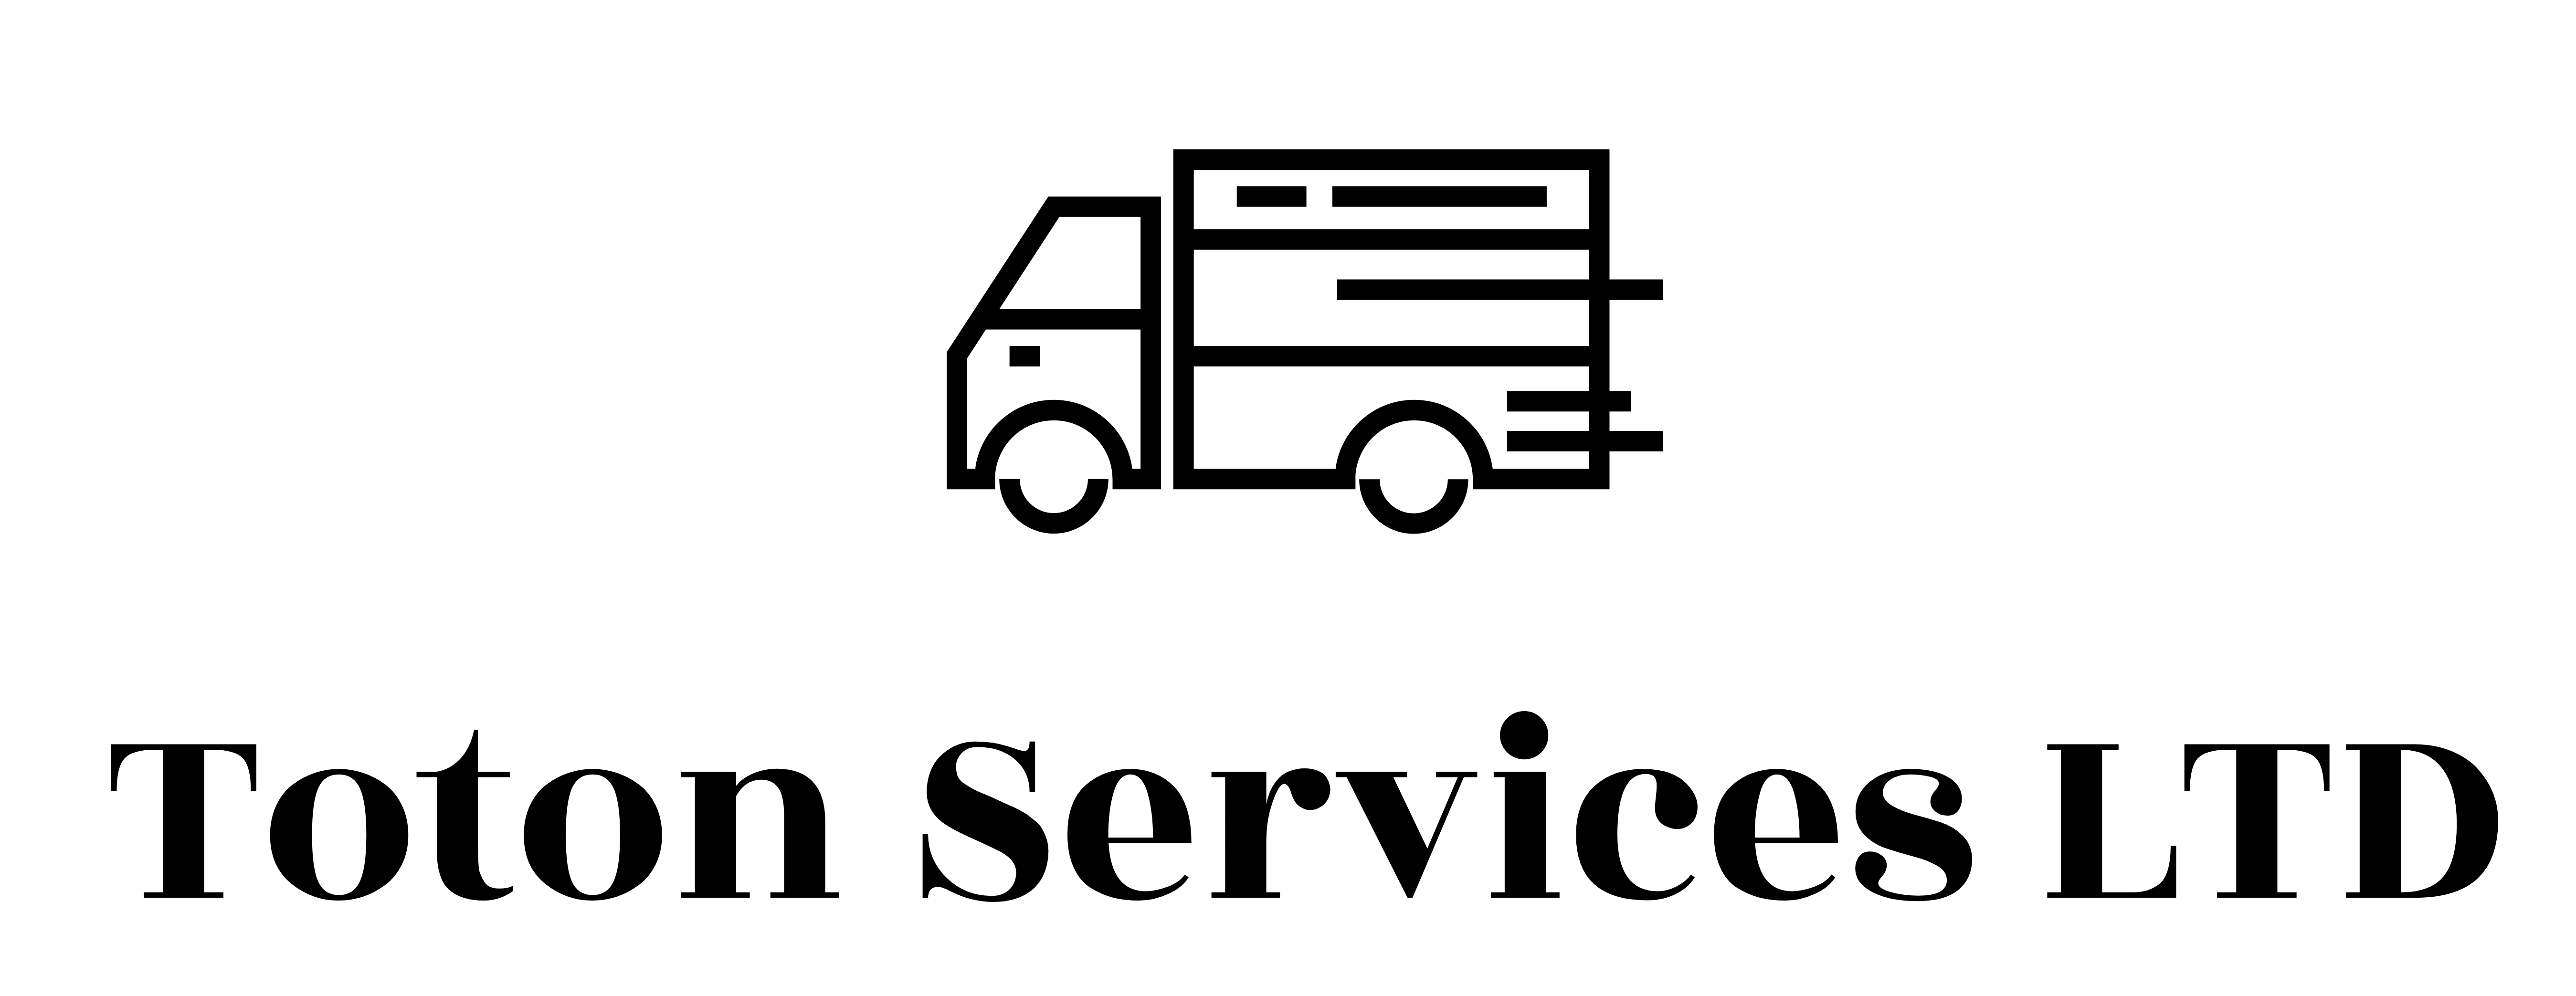 Toton services LTD